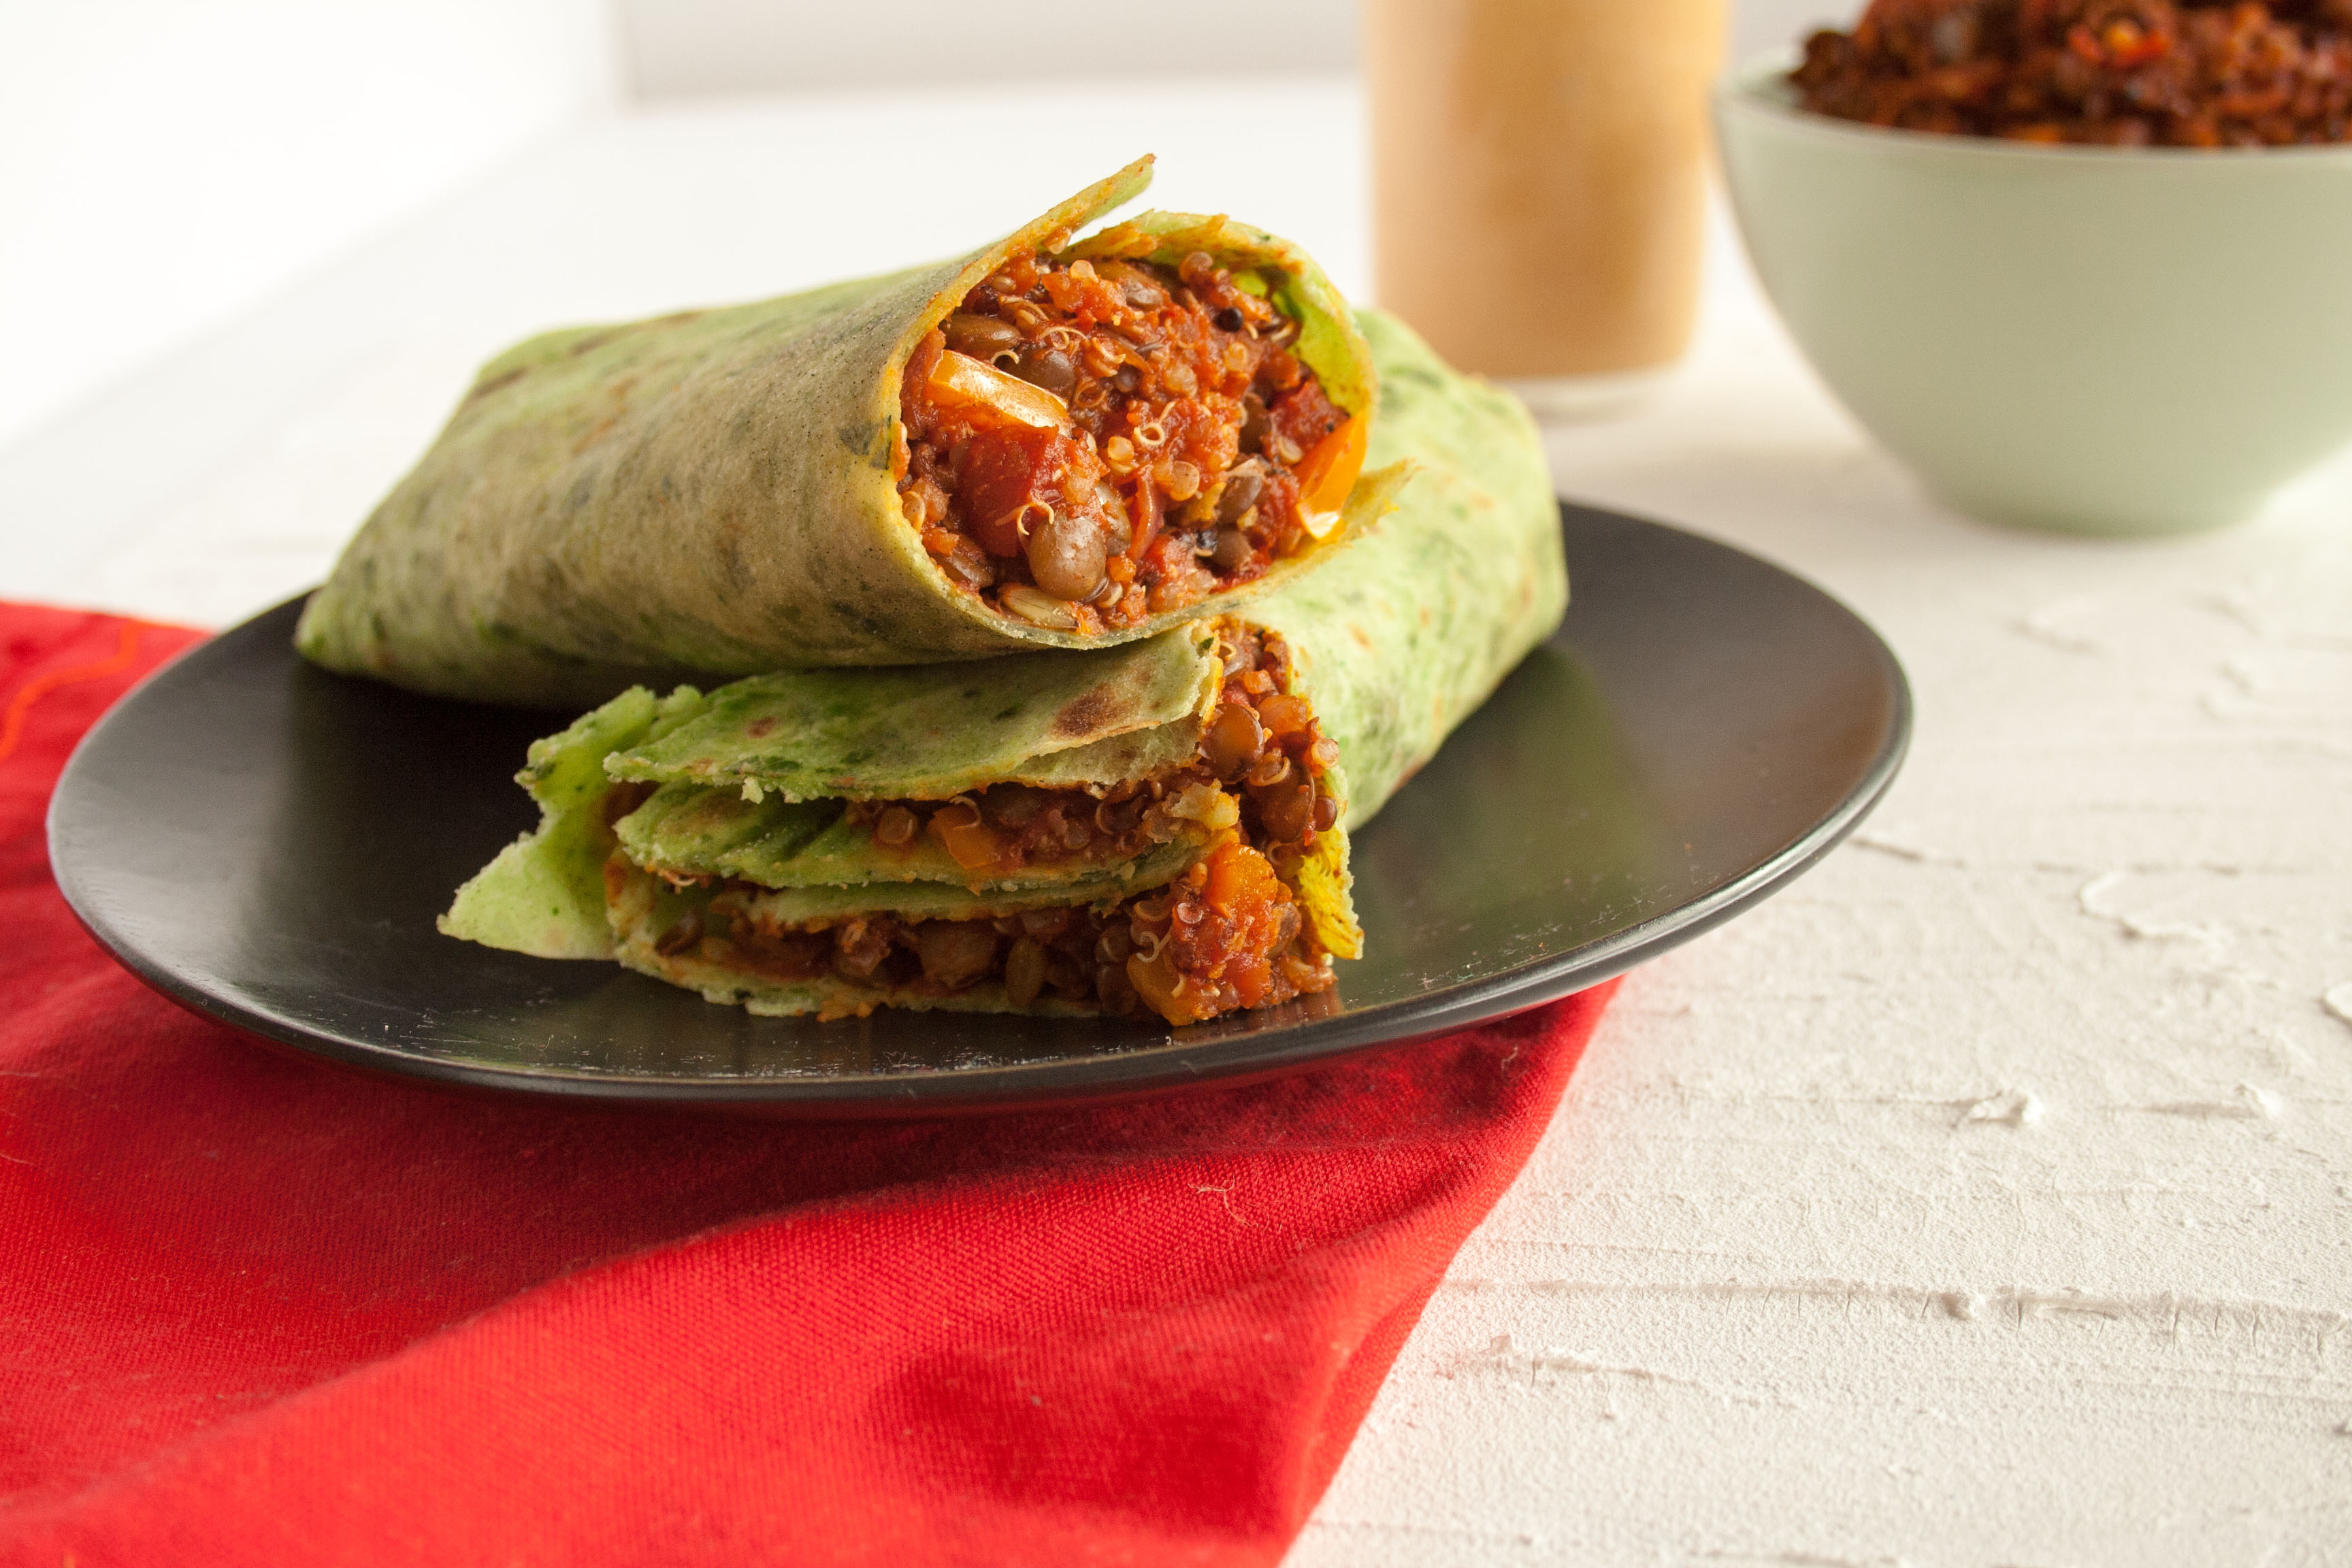 Lentil Quinoa Burritos with Chipotle Sauce